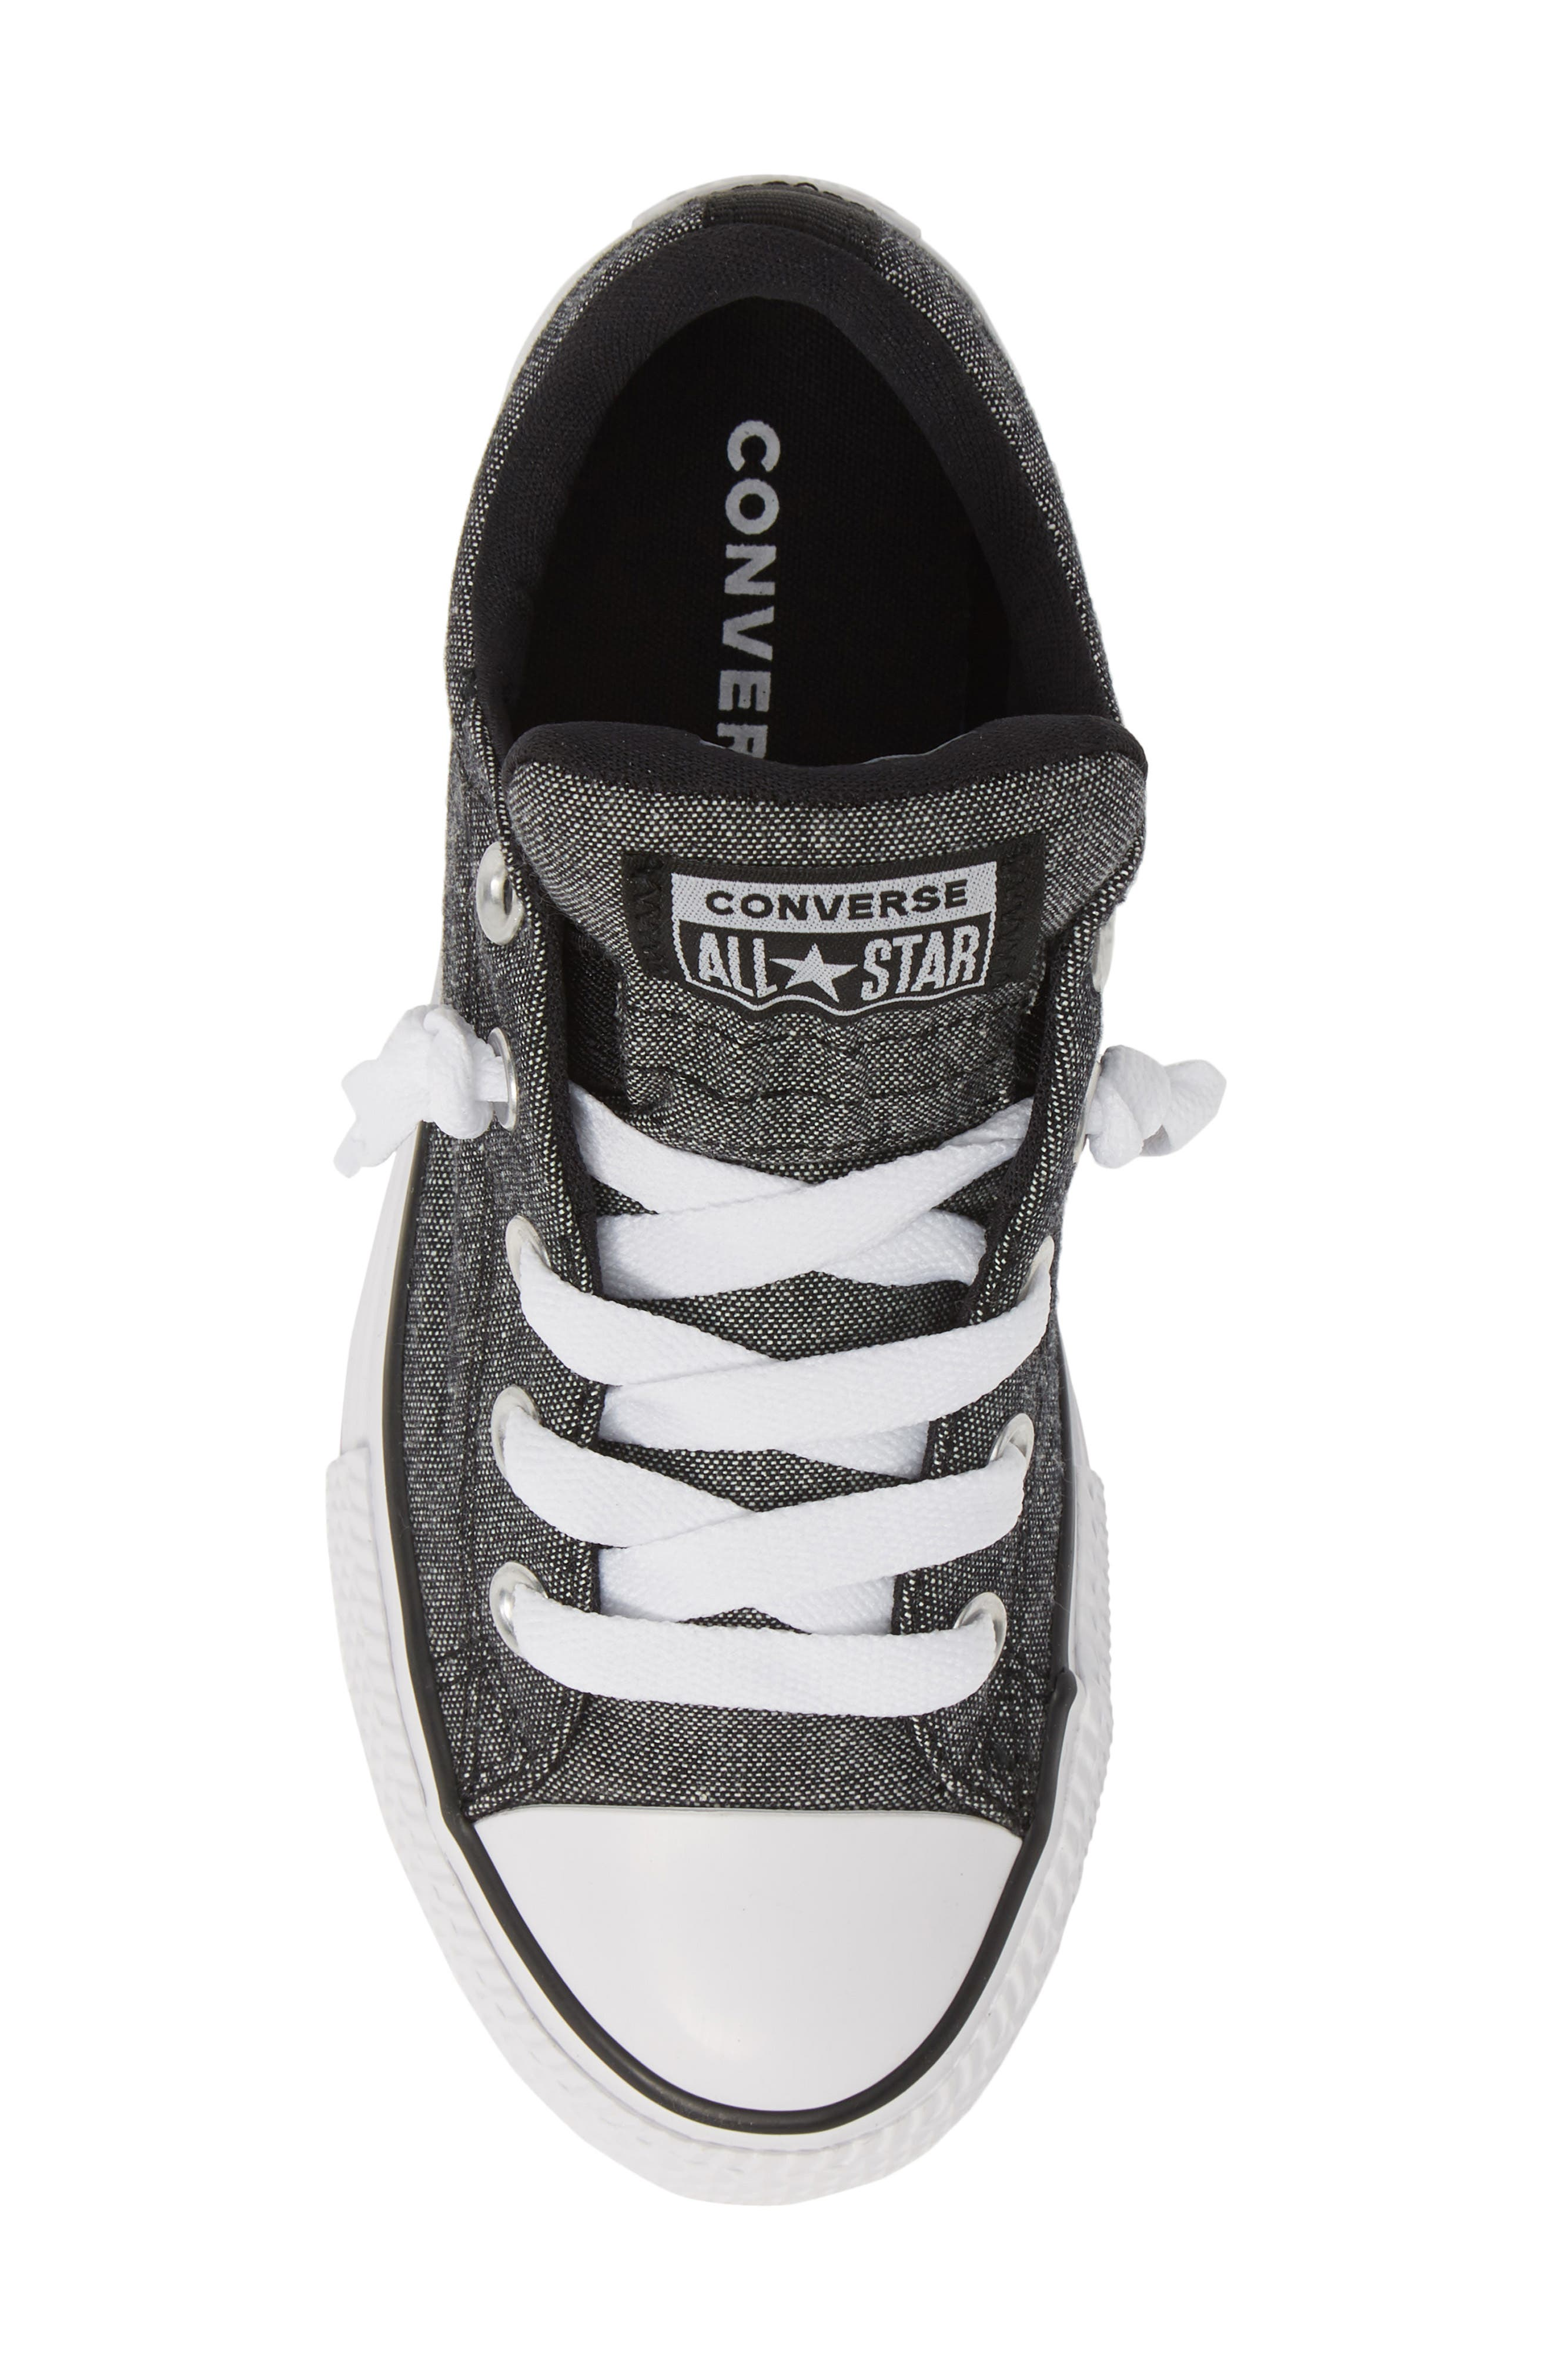 CONVERSE, Chuck Taylor<sup>®</sup> All Star<sup>®</sup> Street Sneaker, Alternate thumbnail 5, color, BLACK/ BLACK/ WHITE